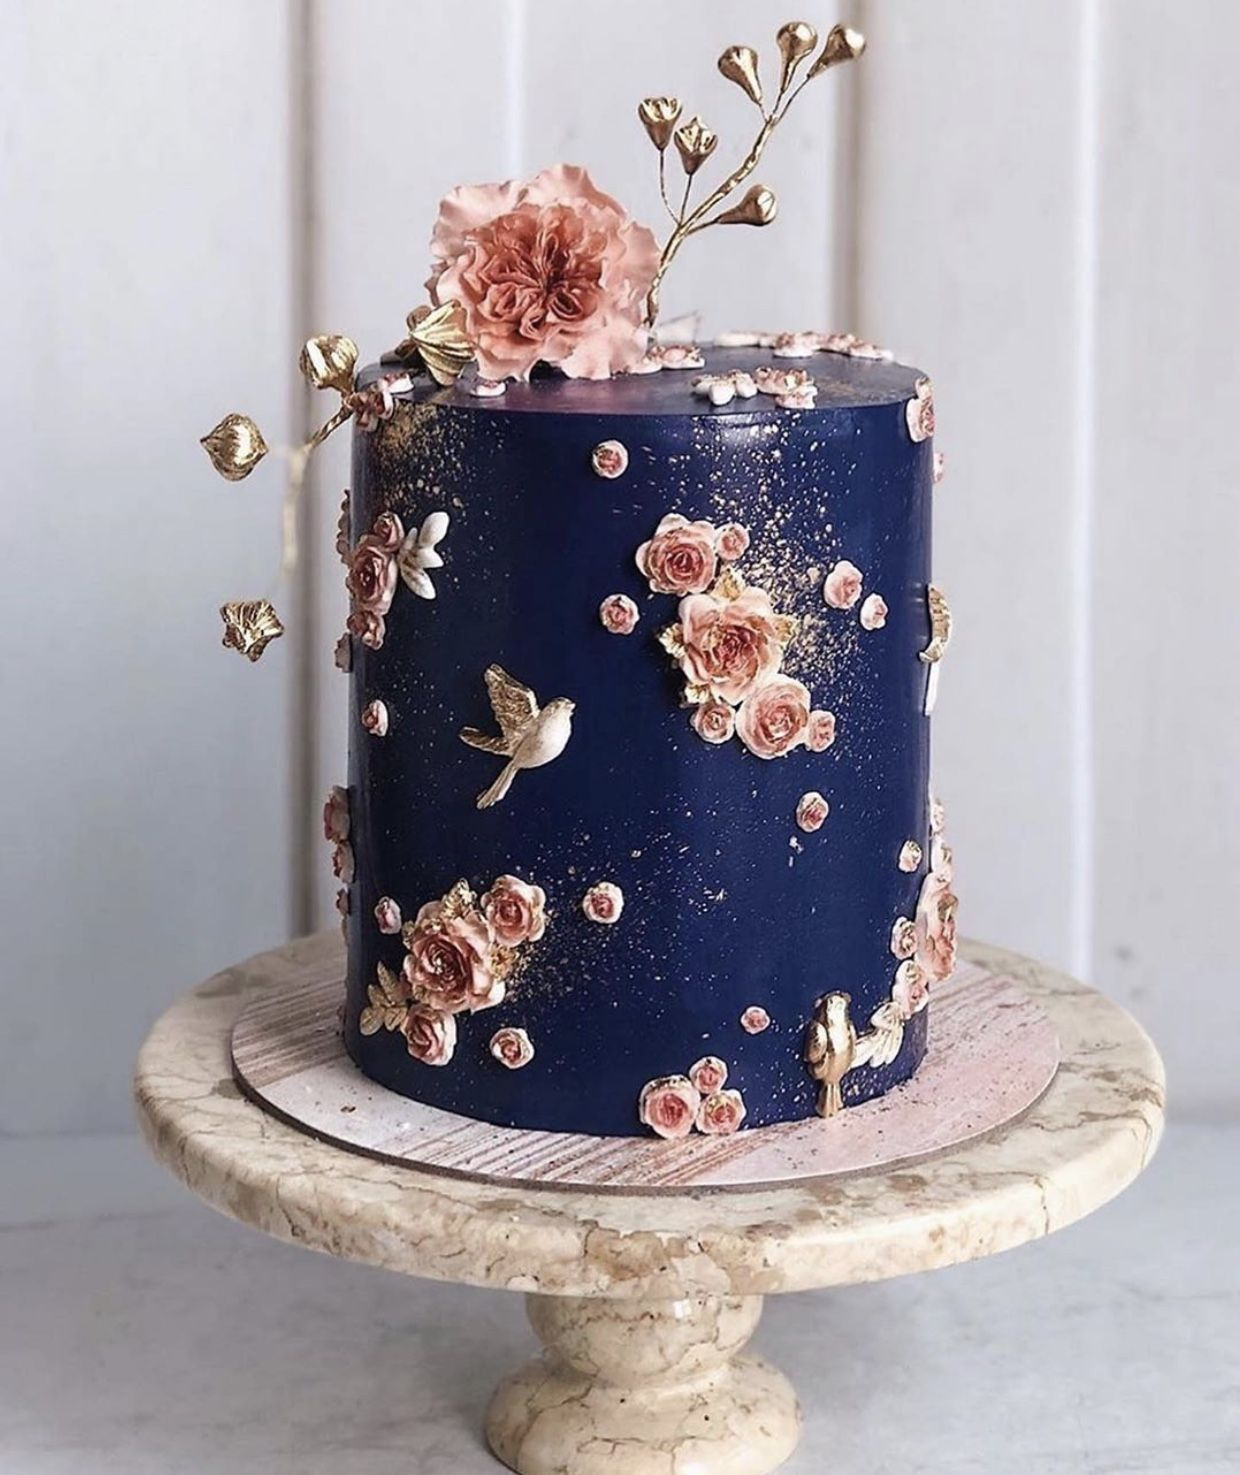 Pin by Asmâa I. Methqal on Cakes (With images) Wedding